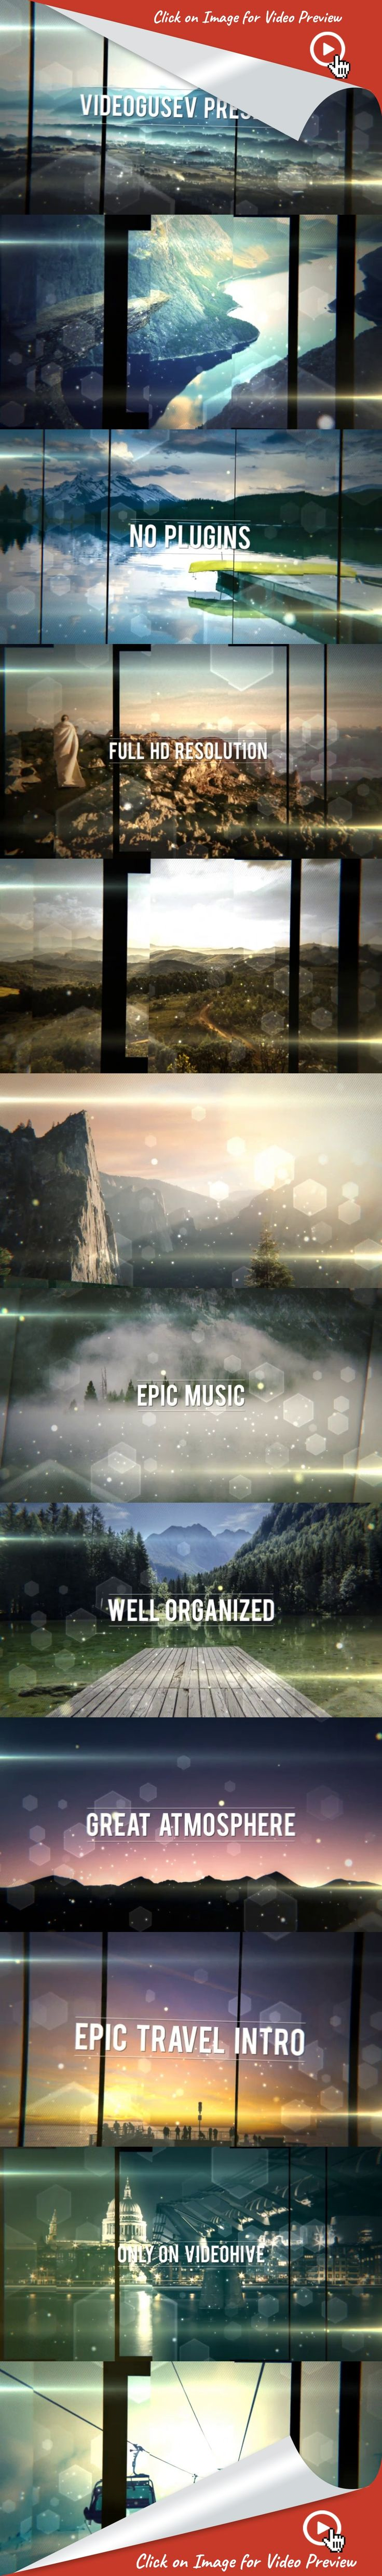 best moments, cinematic, epic, intro, memories, promo, slides, slideshow, titles, travel, video gallery, after effects templates, after effects ideas, after effects motion graphics, after effects projects, videohive projects Epic Travel Intro  Project Features:  After Effects CS5 and Above No Plugins Required Full HD 1920×1080 Very Easy to Use Color Control Video Tutorial Included Images and Music used in the preview are not included  Images  unsplash.com  Music  Orchestra Epic Travel…